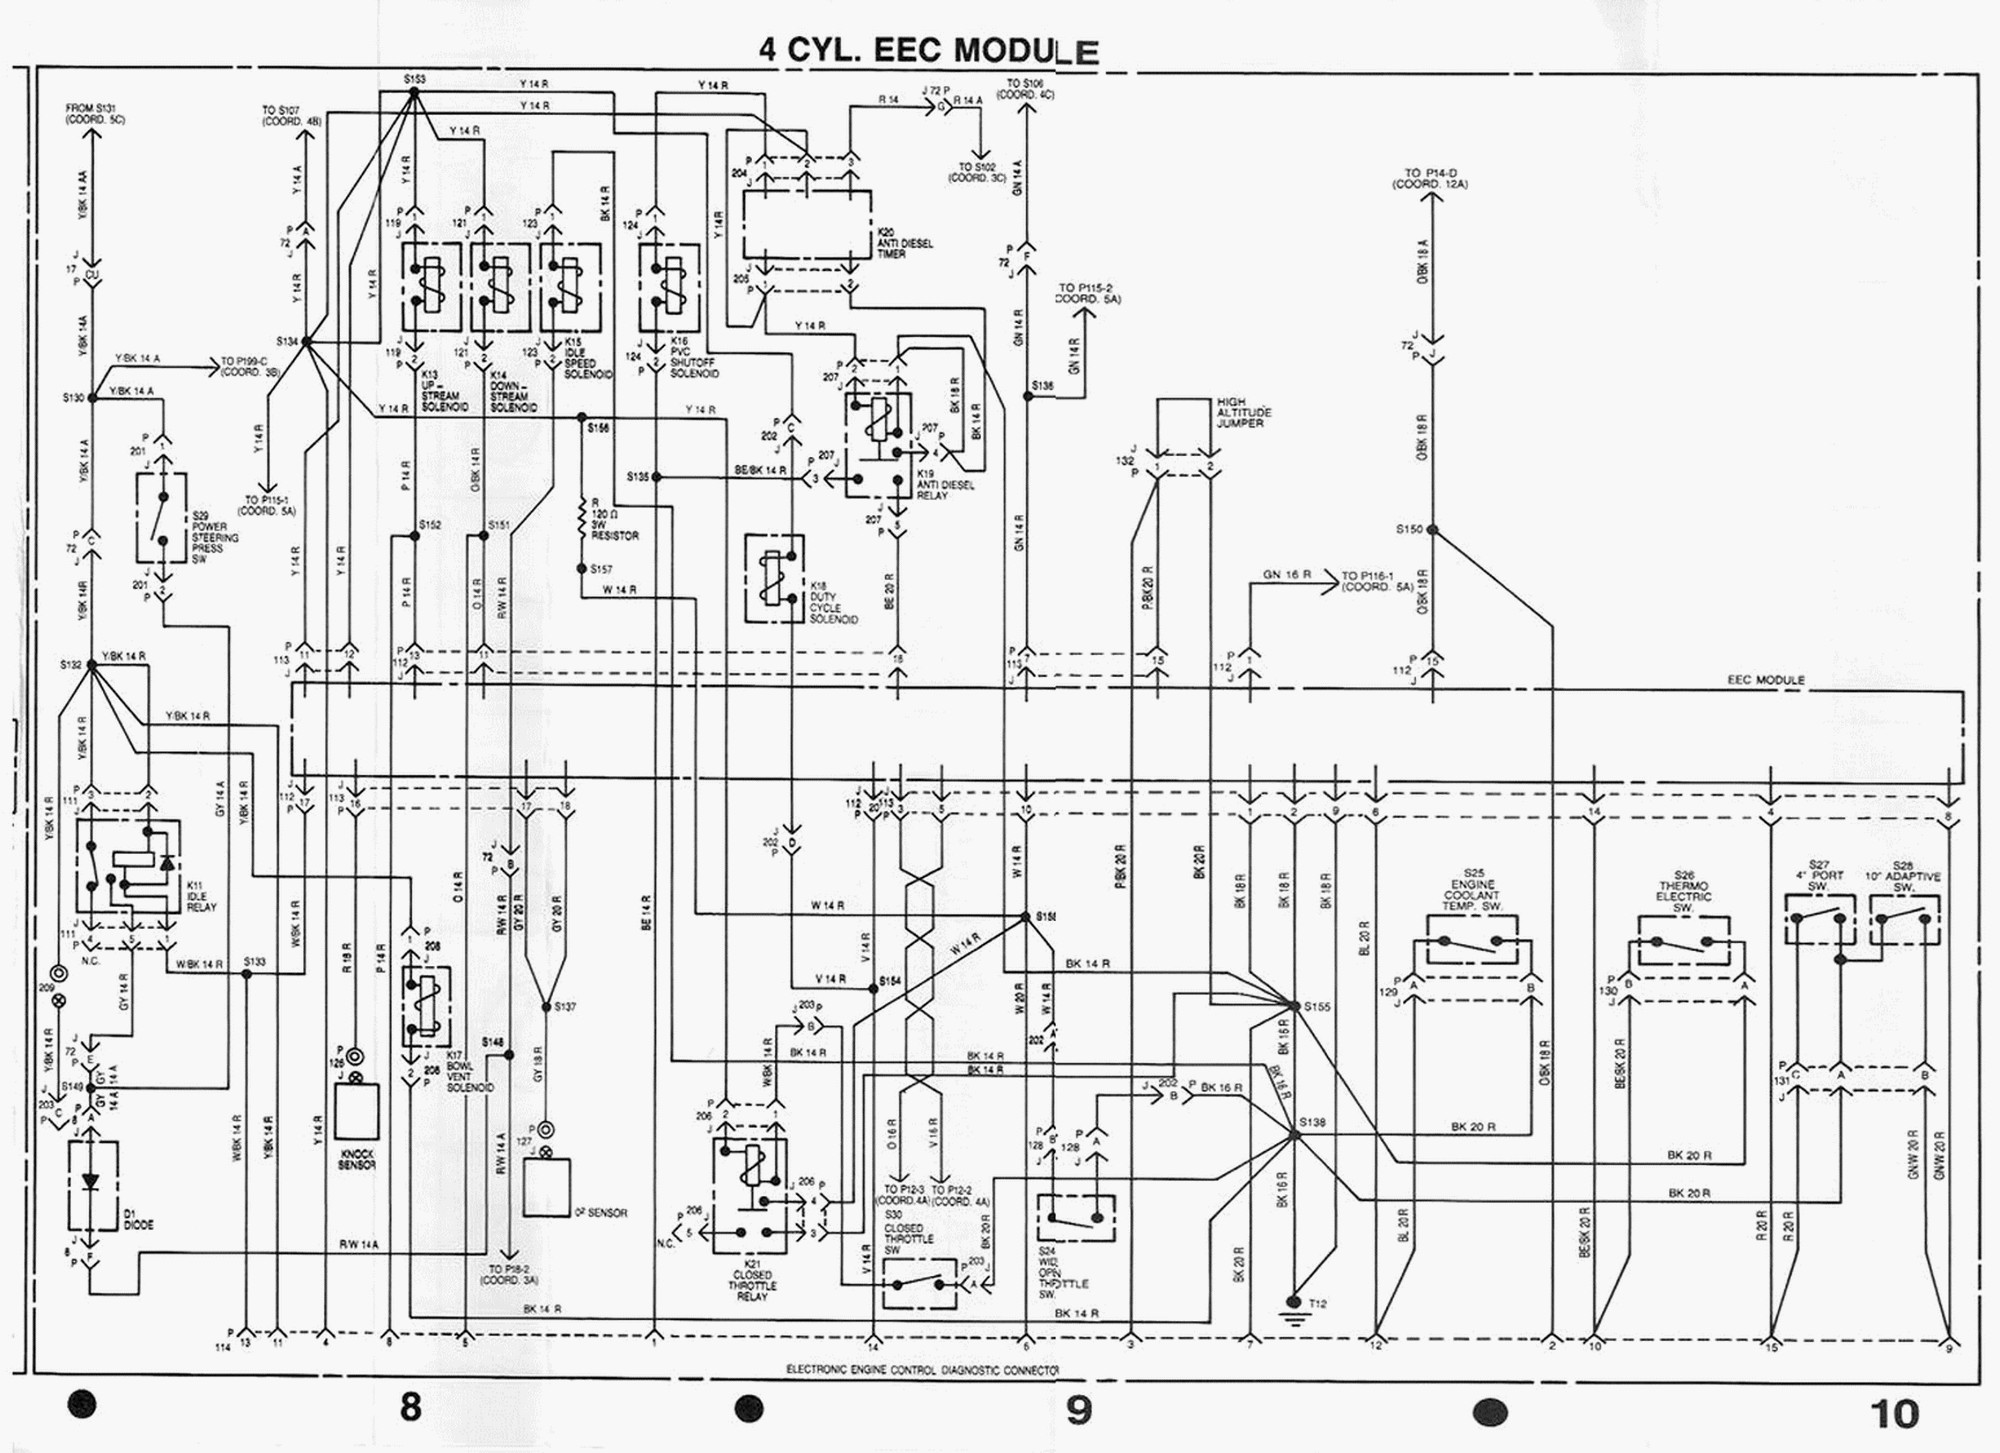 Jeep Comanche Wiring Diagram 28 Images Schematic I 4 Eec Amc Evolution Eagle Forums U2022 View Topic Downloads Available 1989